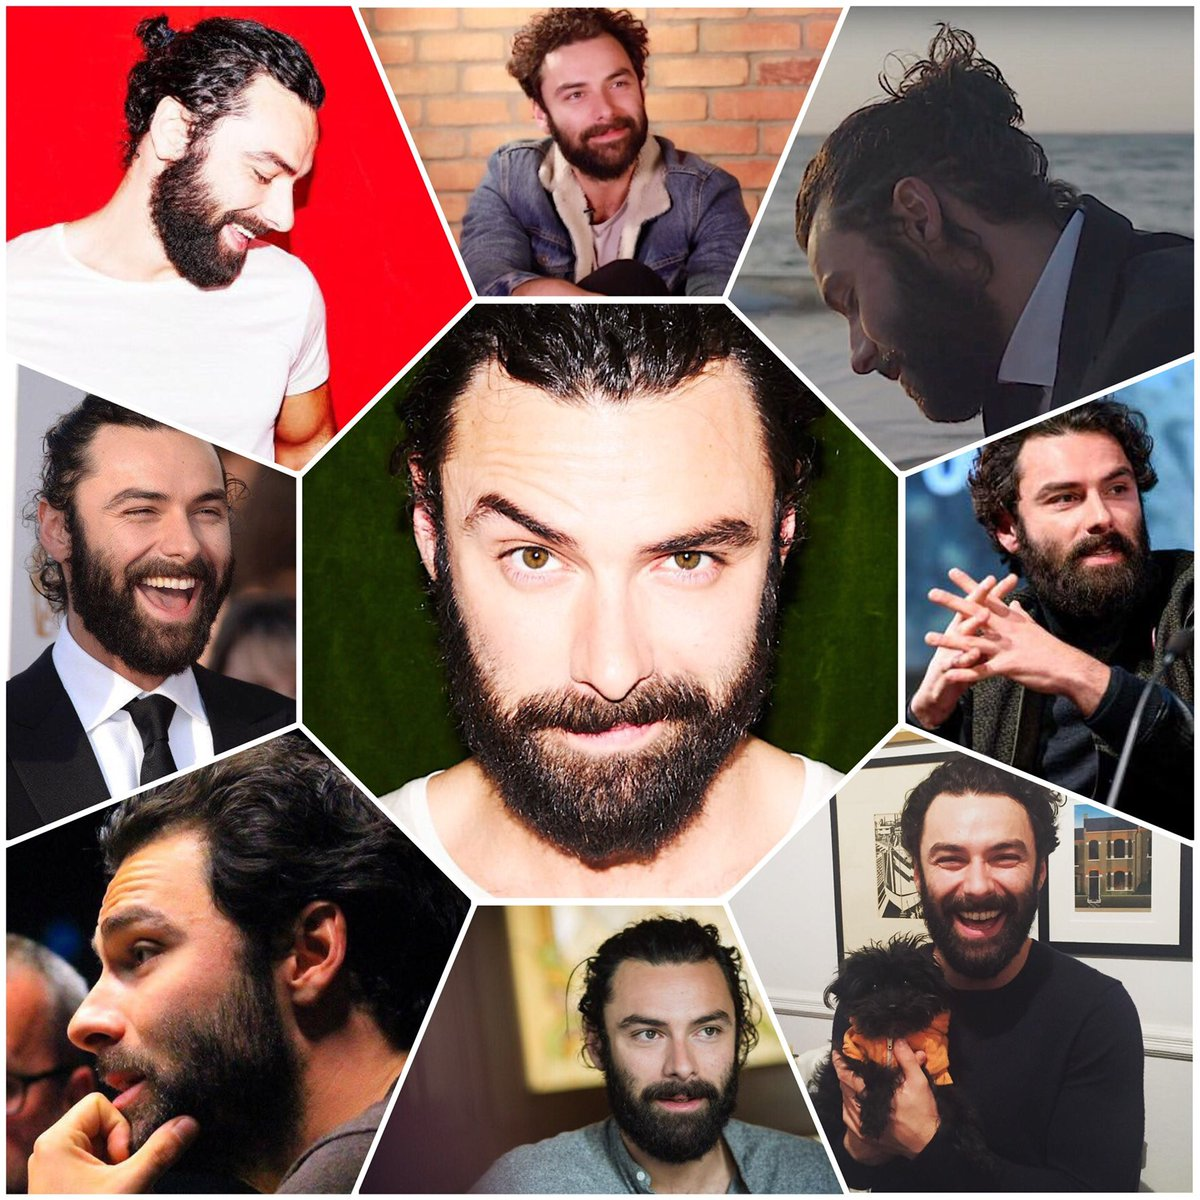 Have an excellent #FurryFriday !! #AidanTurner #AidanCrew  <br>http://pic.twitter.com/GCaJpRQiEG